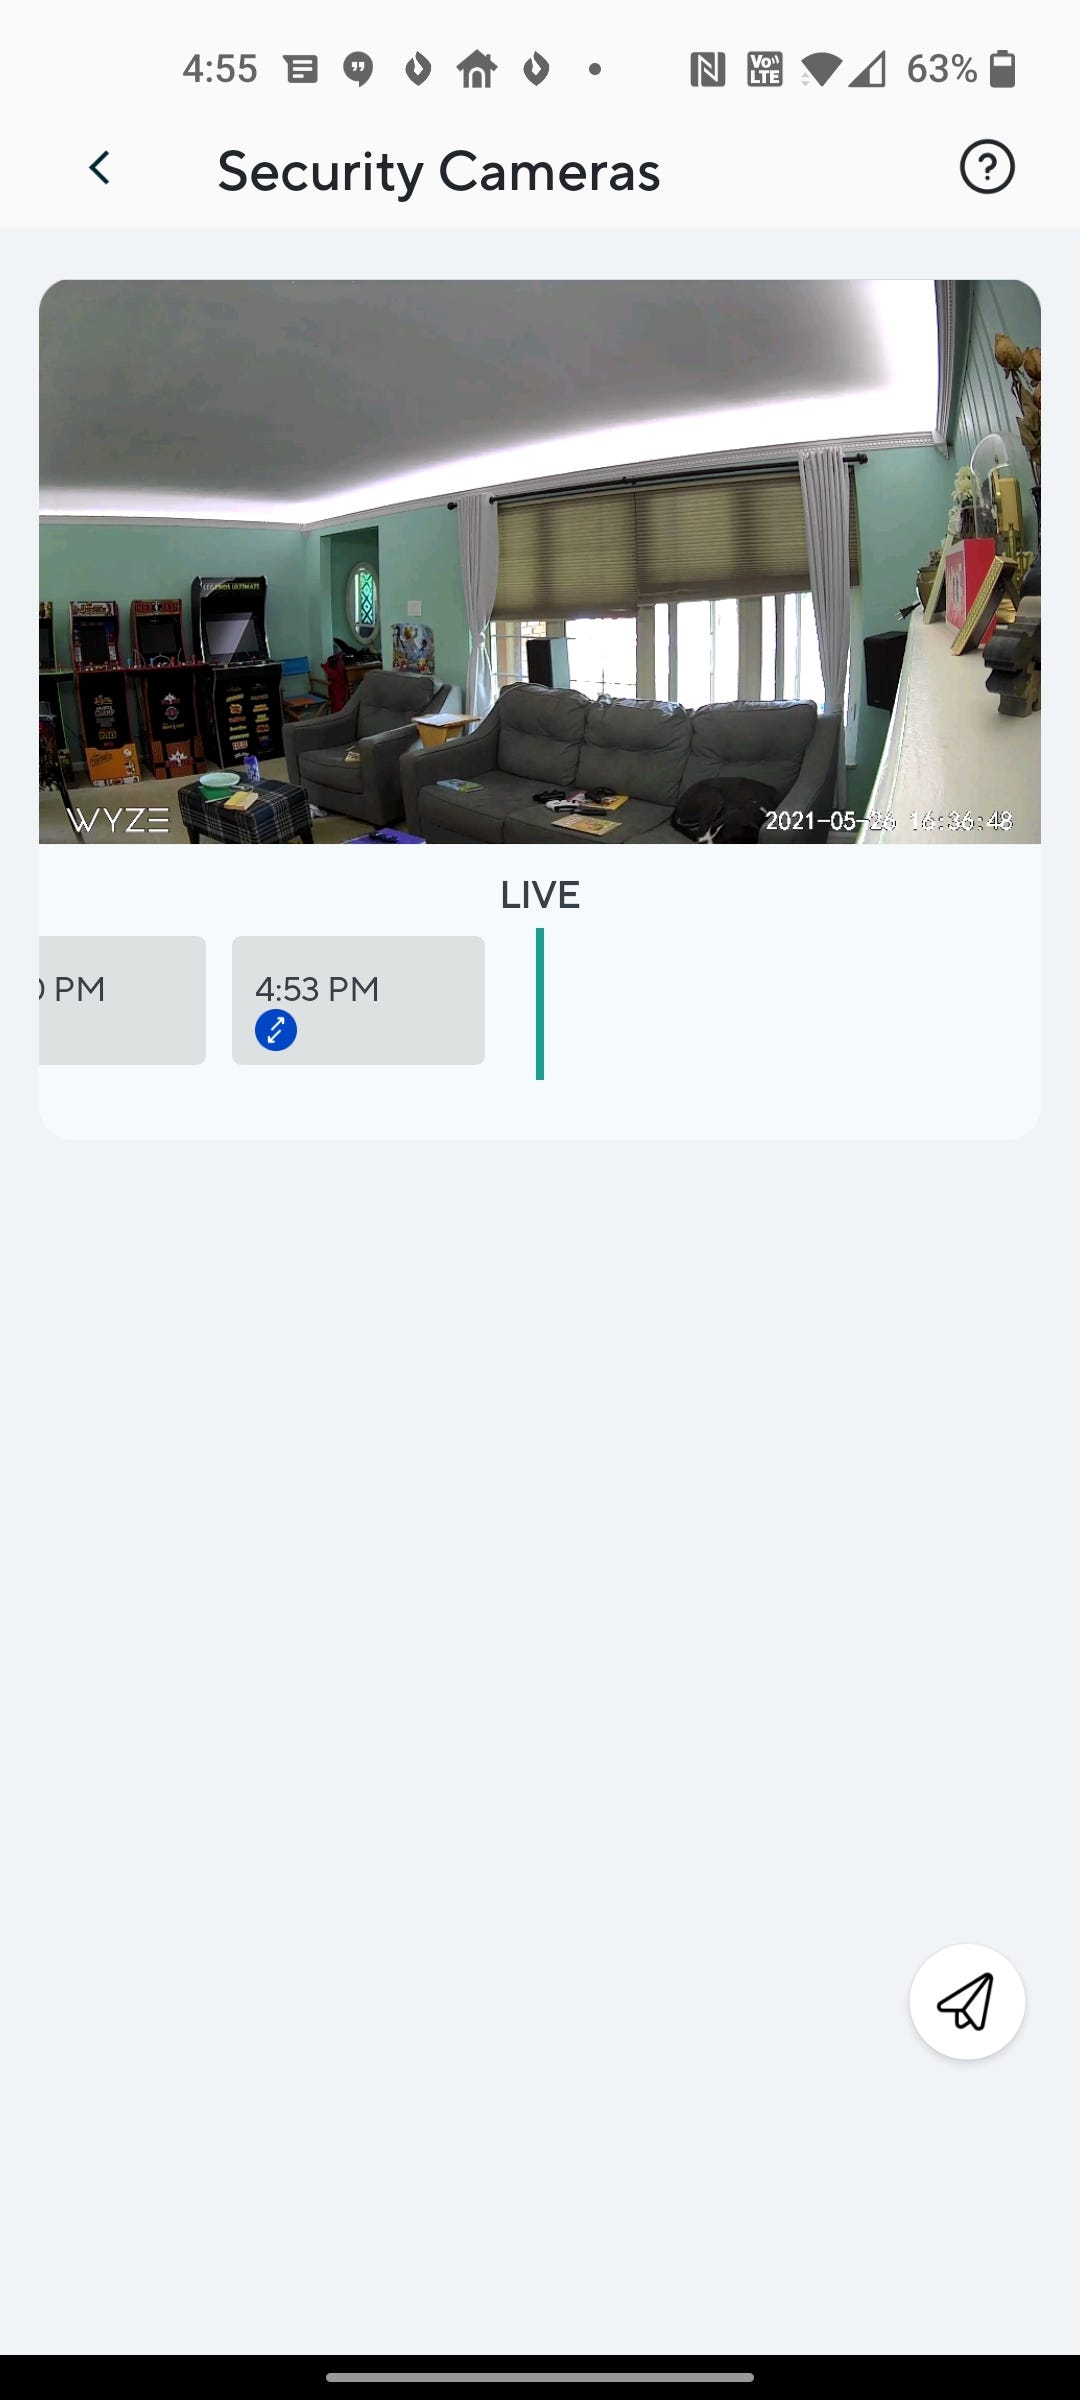 Wyze's Home Monitoring security camera views.